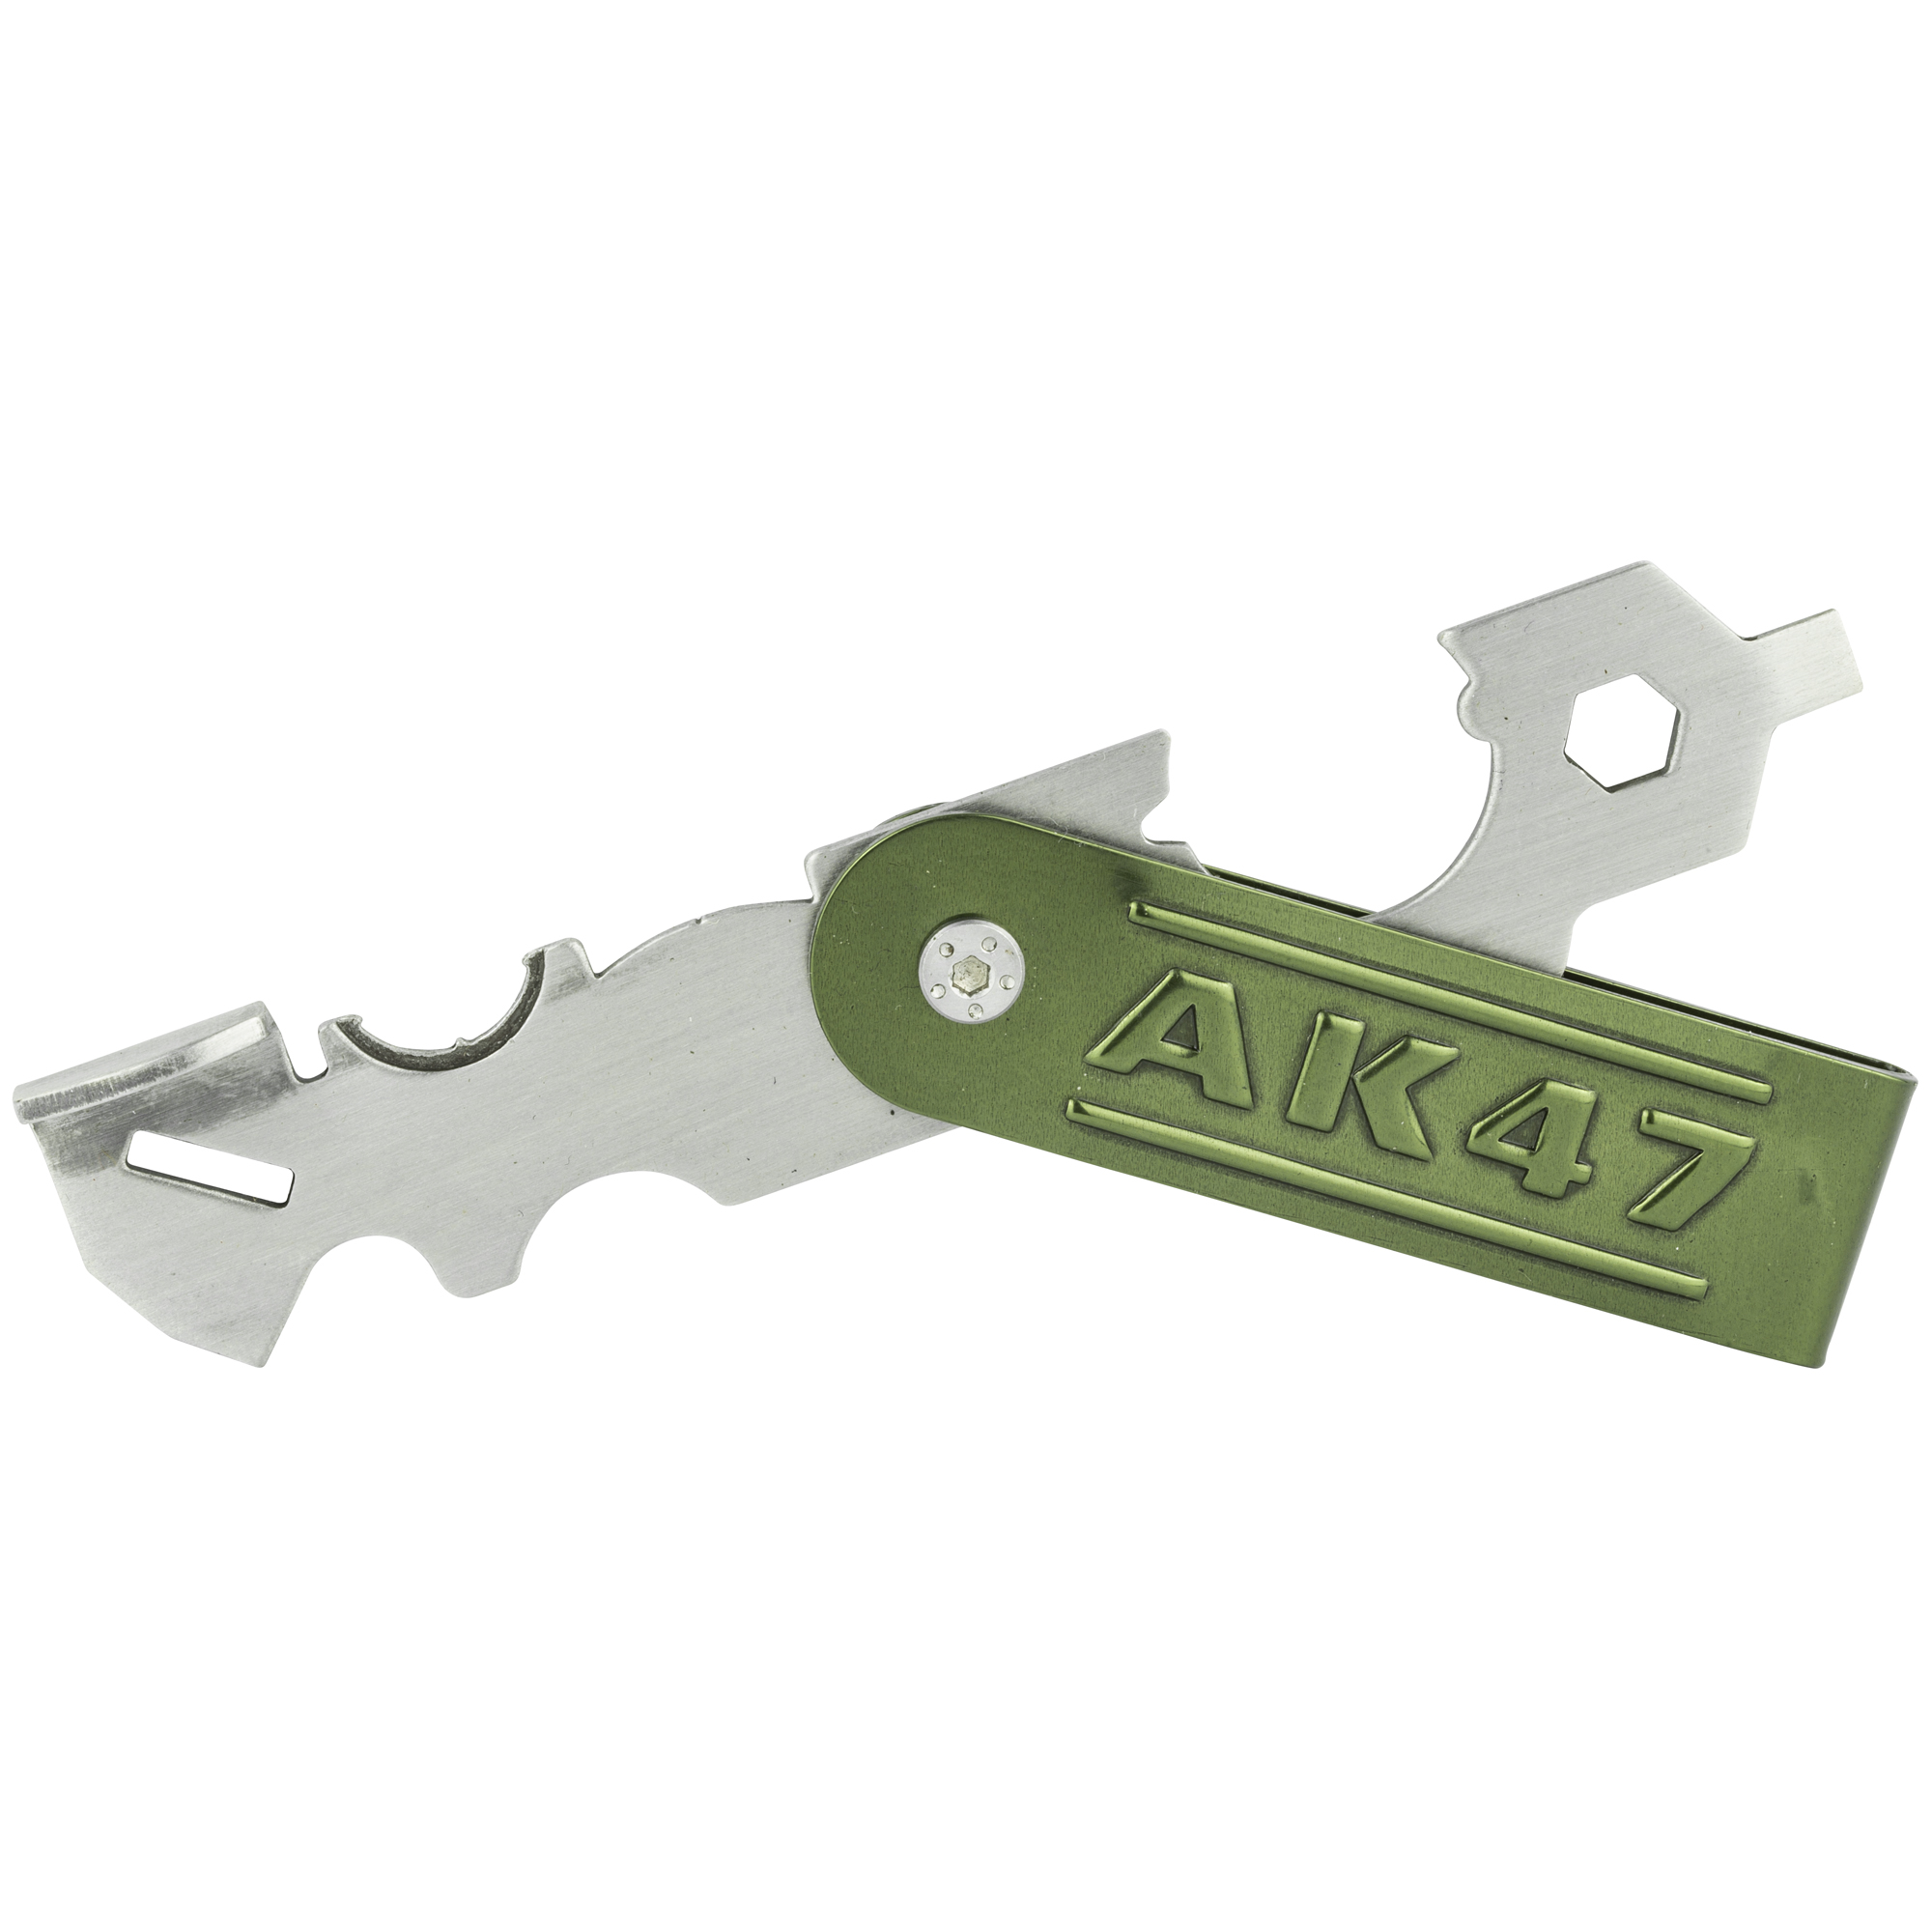 "The AK47 Scraper is a precision tool dedicated to the removal of baked-on carbon buildup from the gas piston and bolt of your favorite AK. It includes wrenches and multi-surface scrapers"" and is easier and faster than both solvents and brushes."